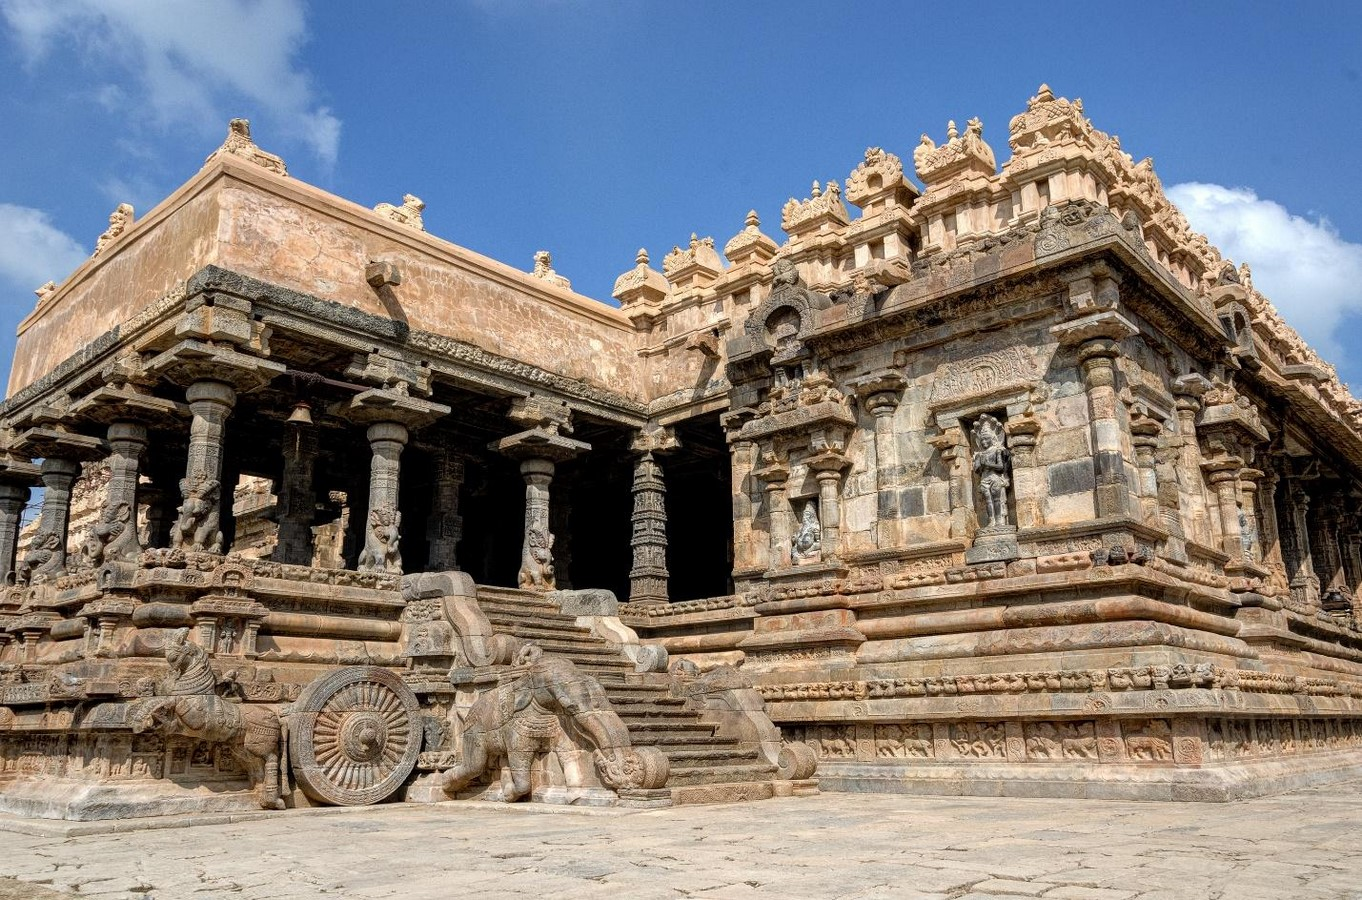 Sustainable practices in traditional ancient Indian architecture - Sheet4